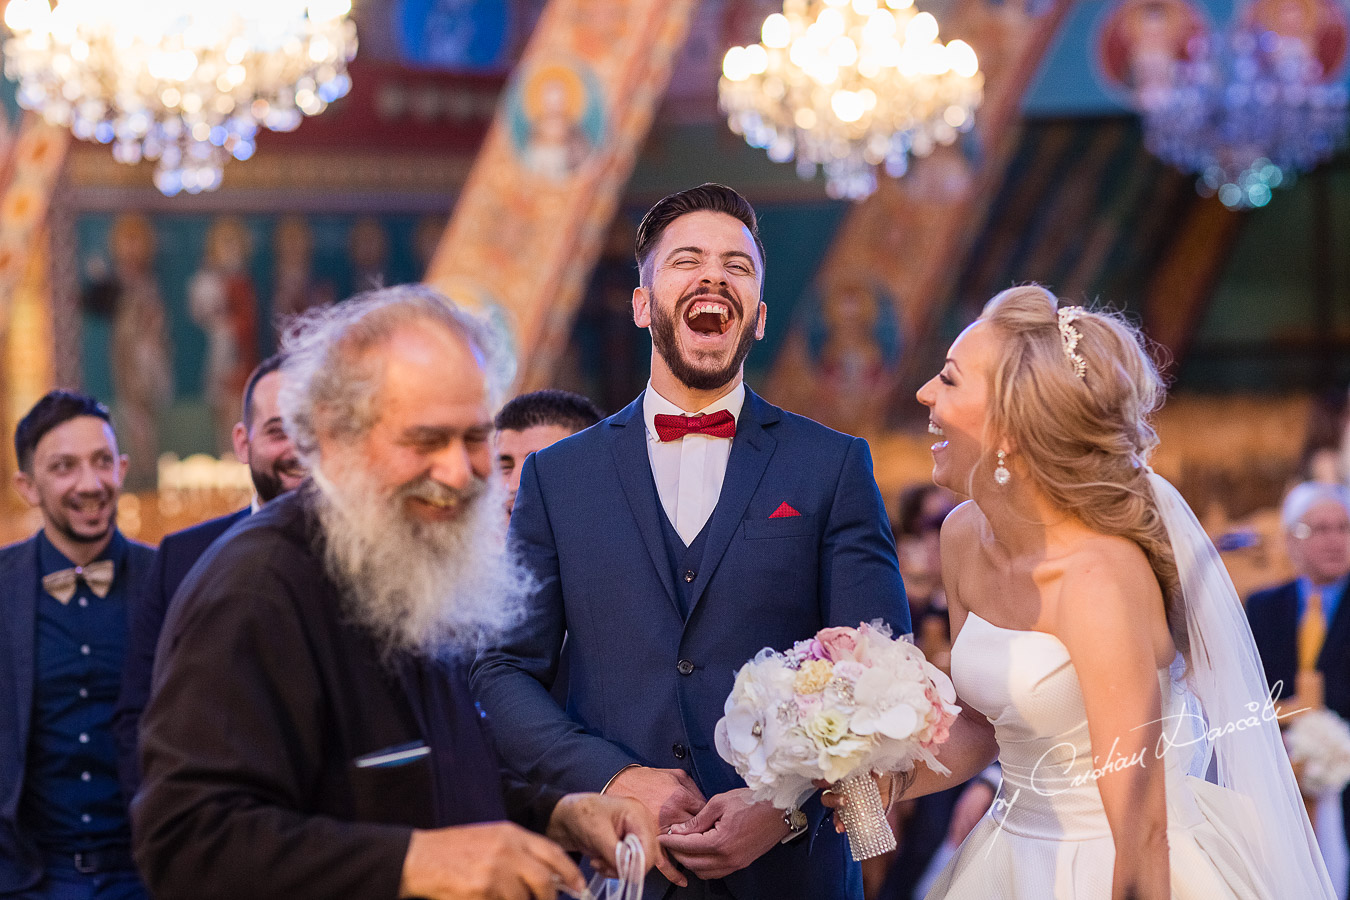 Funny moments photographed at a wedding in Nicosia by Cyprus Wedding Photographer Cristian Dascalu